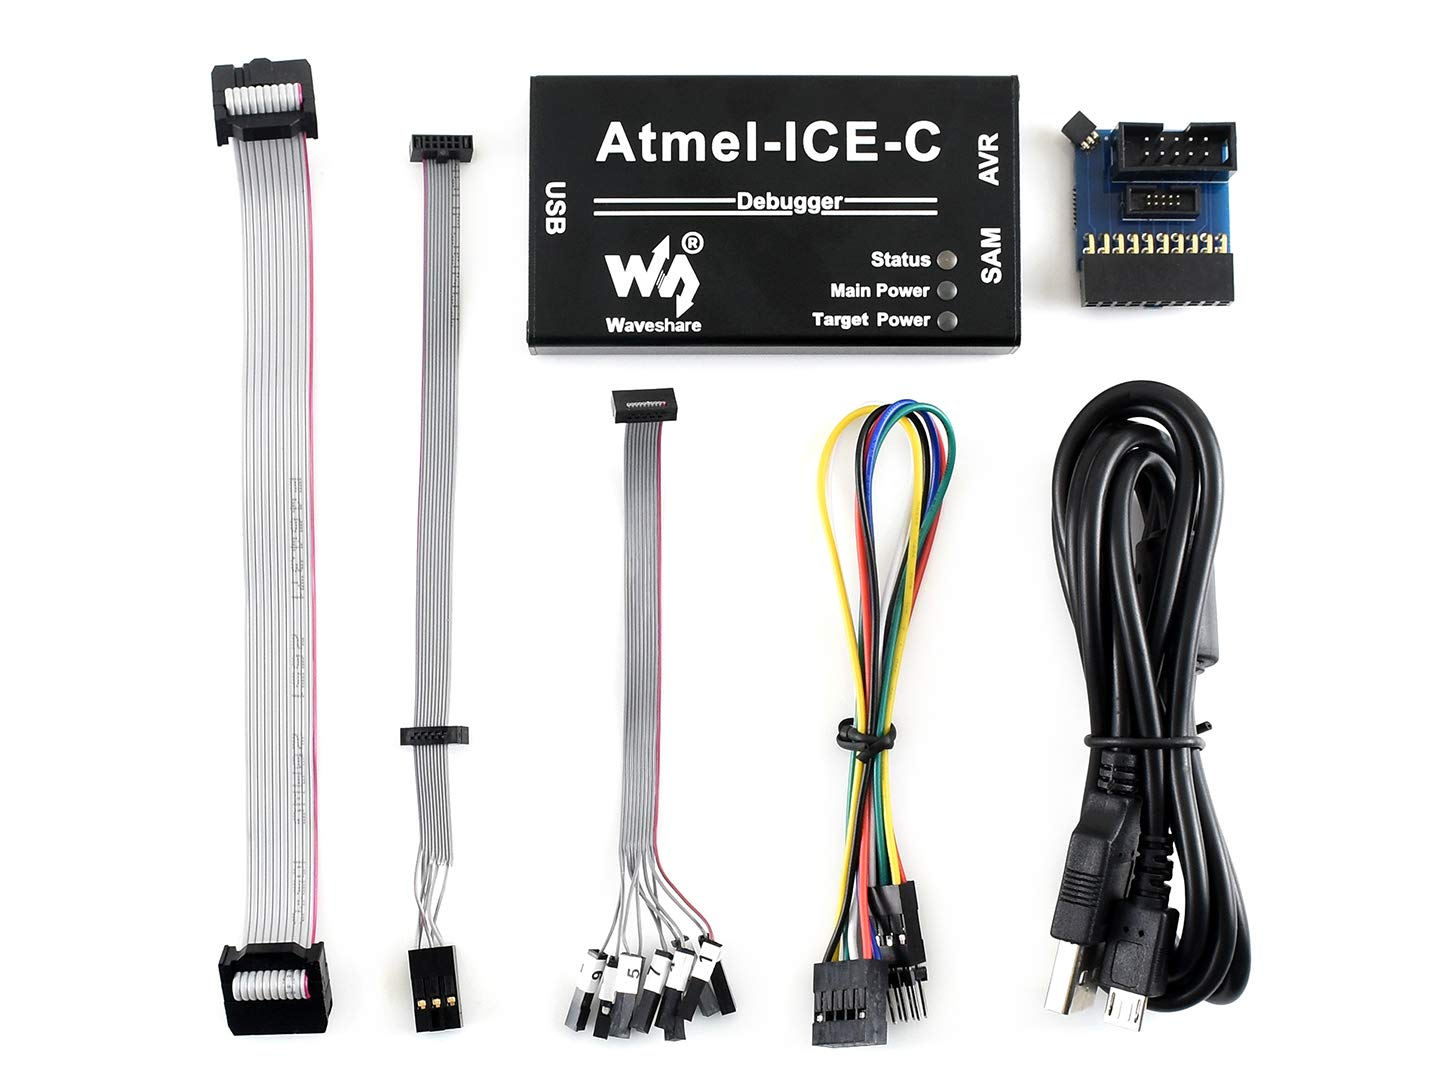 Waveshare Atmel-ICE-C Debugger Programmer Powerful Development Tool Atmel SAM and AVR Microcontrollers Original ATMEL-ICE-PCBA Inside Durable Aluminium Alloy Enclosure